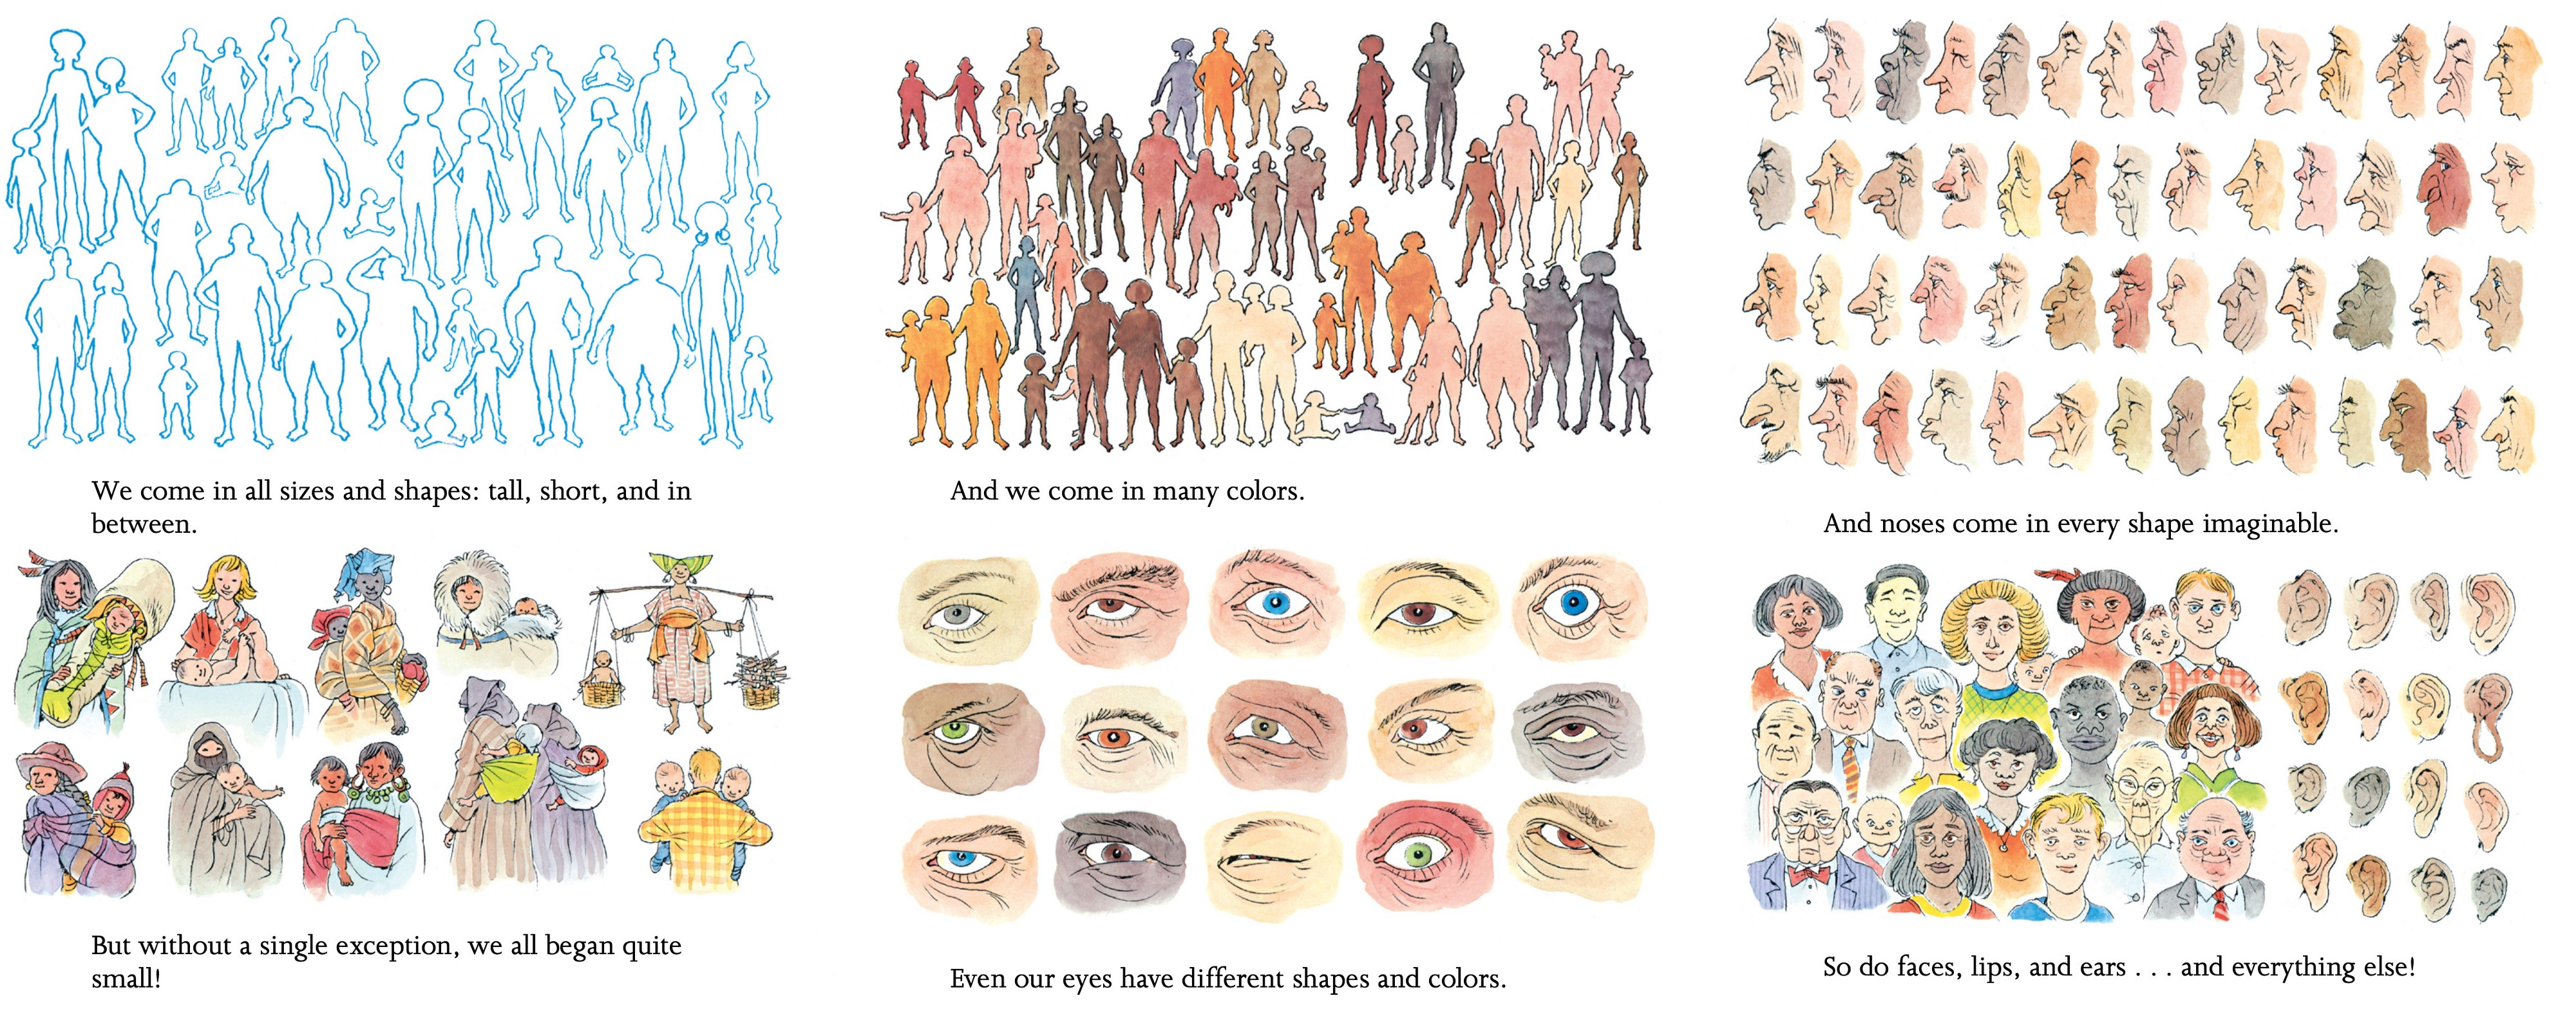 """Excerpt of """"People"""" with drawings showing examples of variations in body shape, skin color, eye color, noses, and more."""